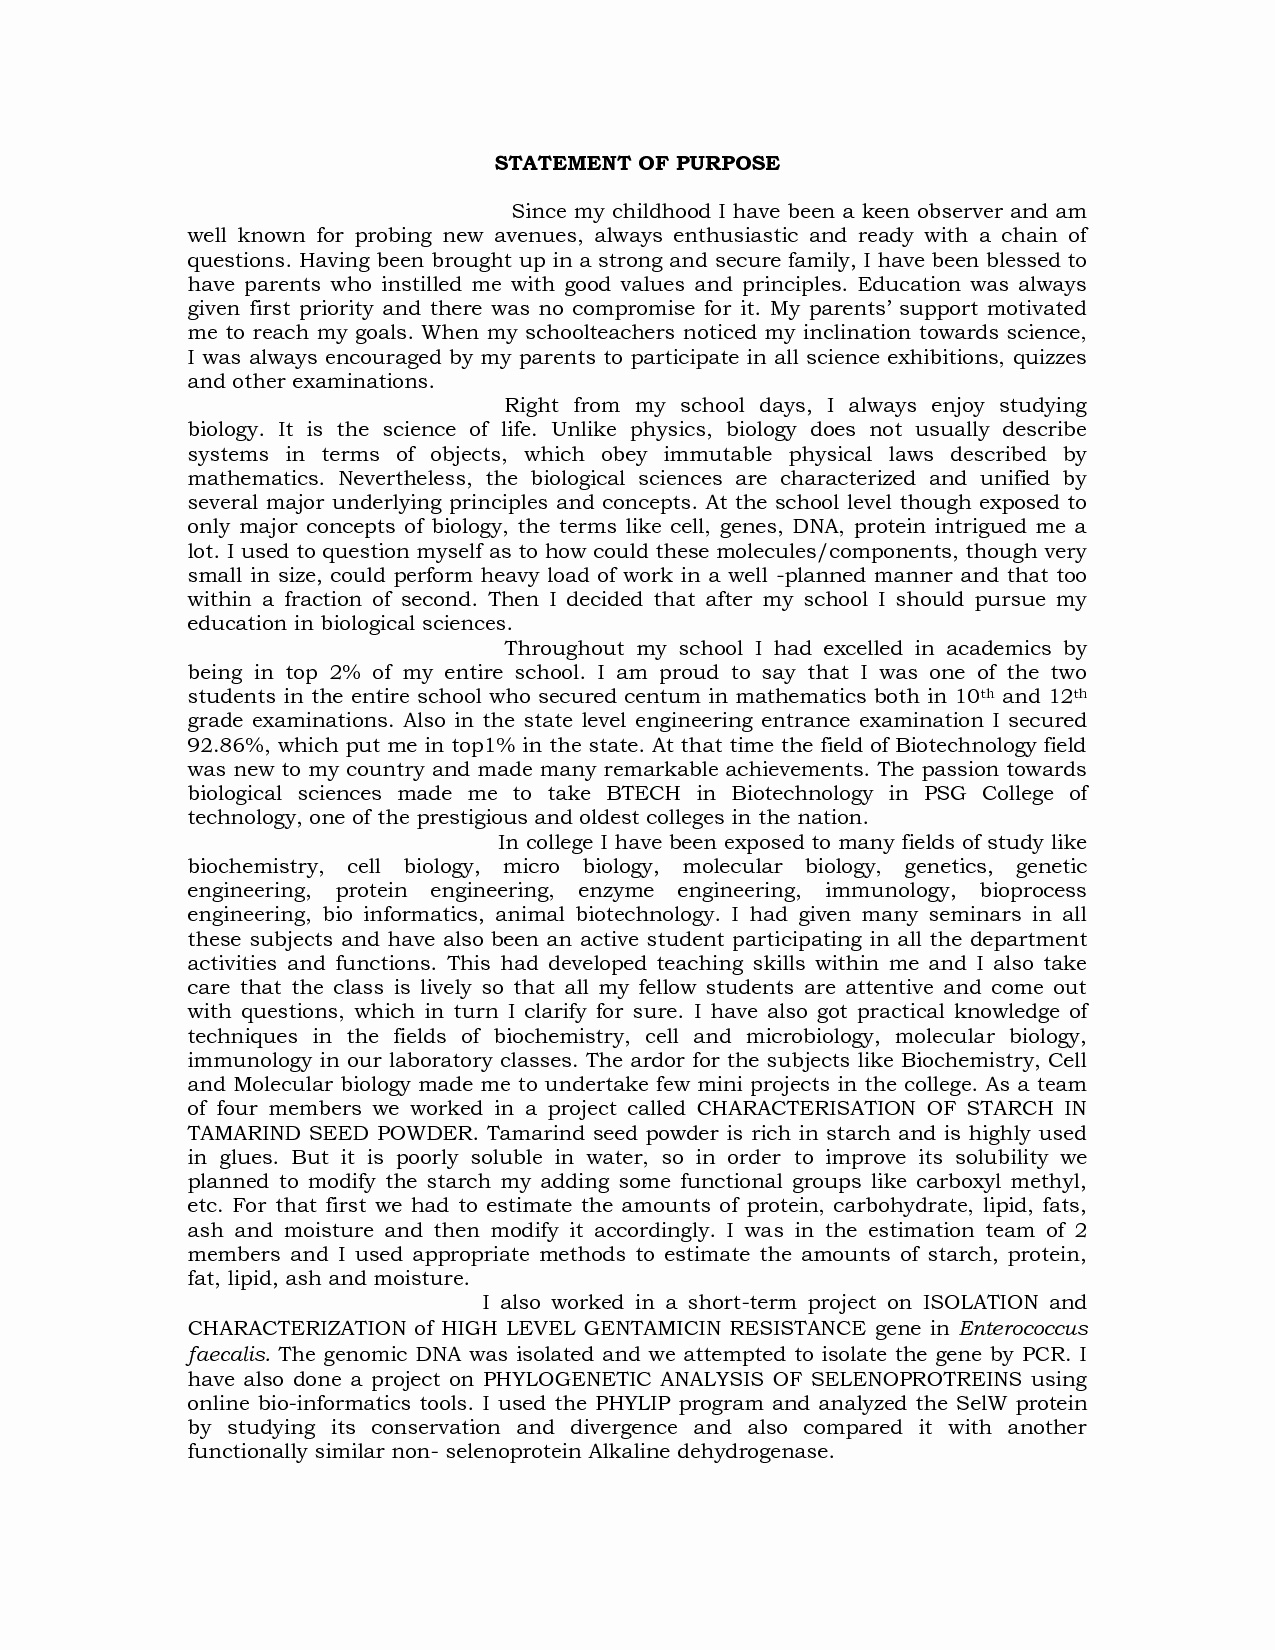 Personal Statement Template for College Best Of Personal Statement Sample for Applying Scholarship Buy